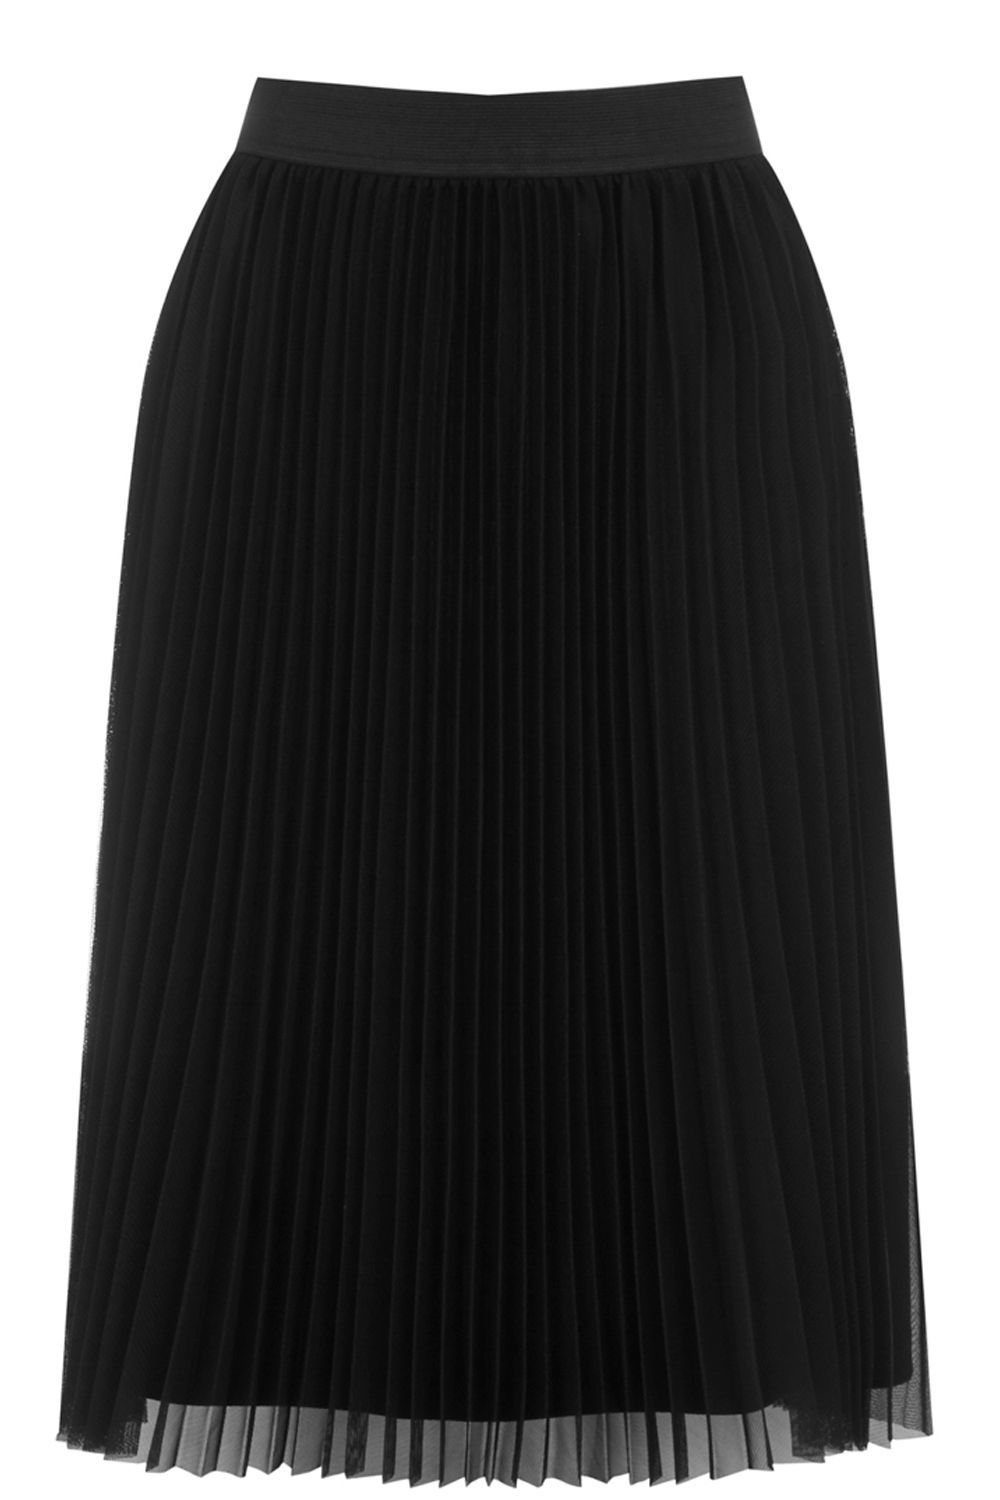 Pleated Mesh Skirt, Black - length: below the knee; pattern: plain; style: straight; fit: loose/voluminous; waist: high rise; predominant colour: black; occasions: casual, evening, creative work; fibres: polyester/polyamide - 100%; texture group: sheer fabrics/chiffon/organza etc.; pattern type: fabric; wardrobe: basic; season: a/w 2016